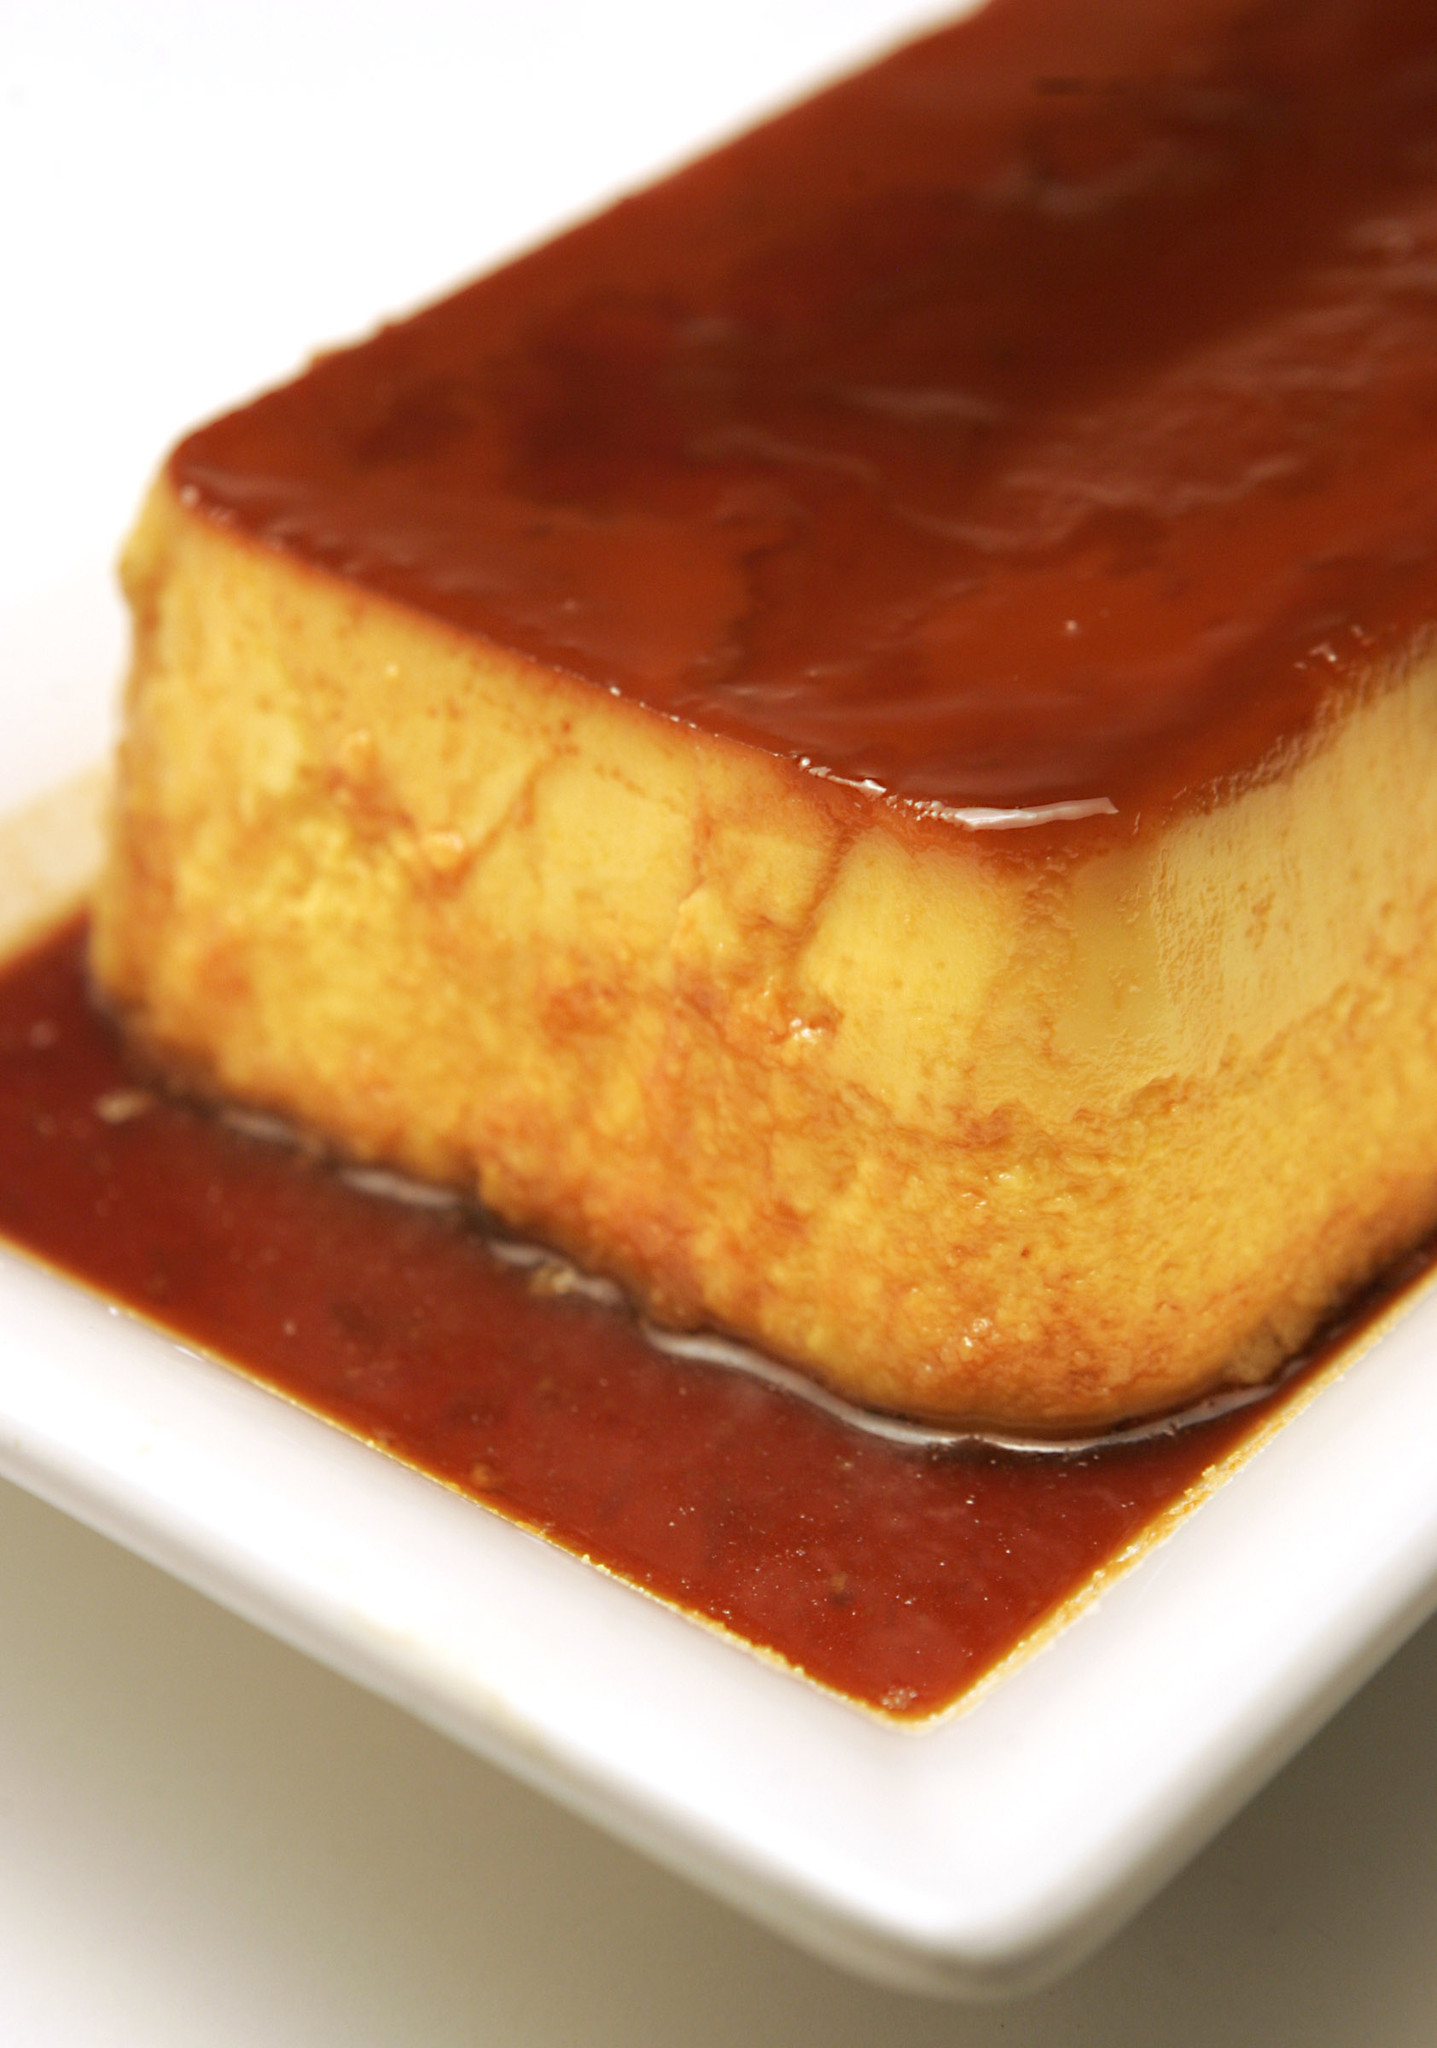 Photos: 97 great Thanksgiving recipes - Kabocha squash creme caramel